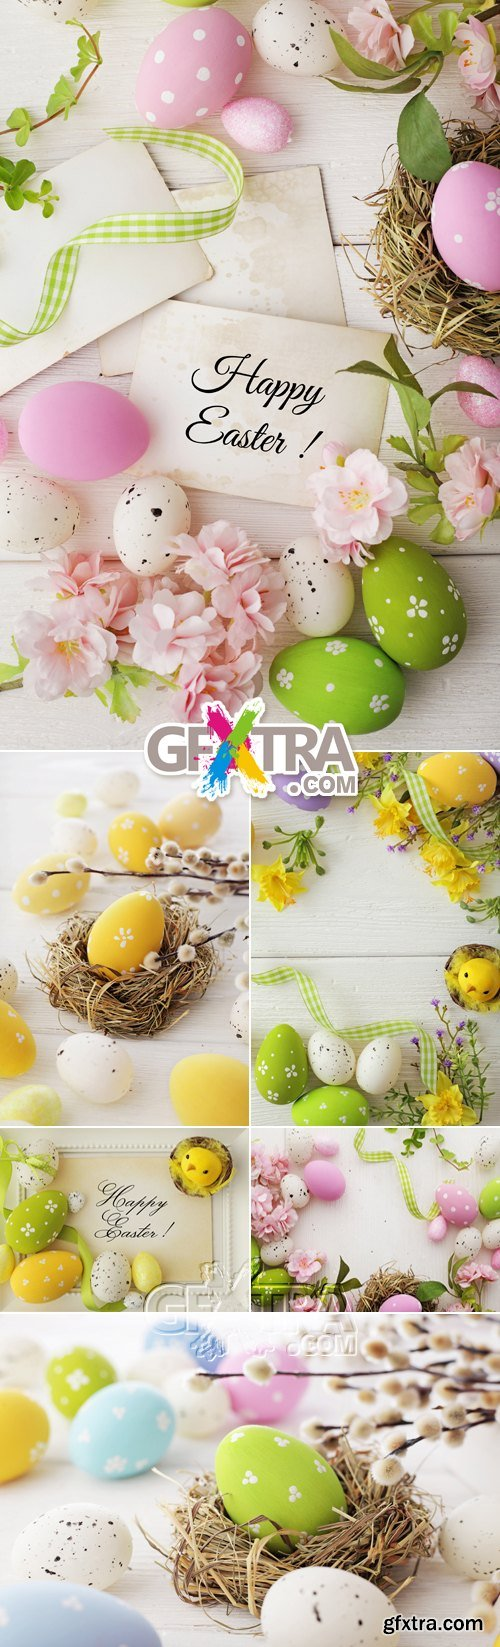 Stock Photo - Color Easter Eggs 2